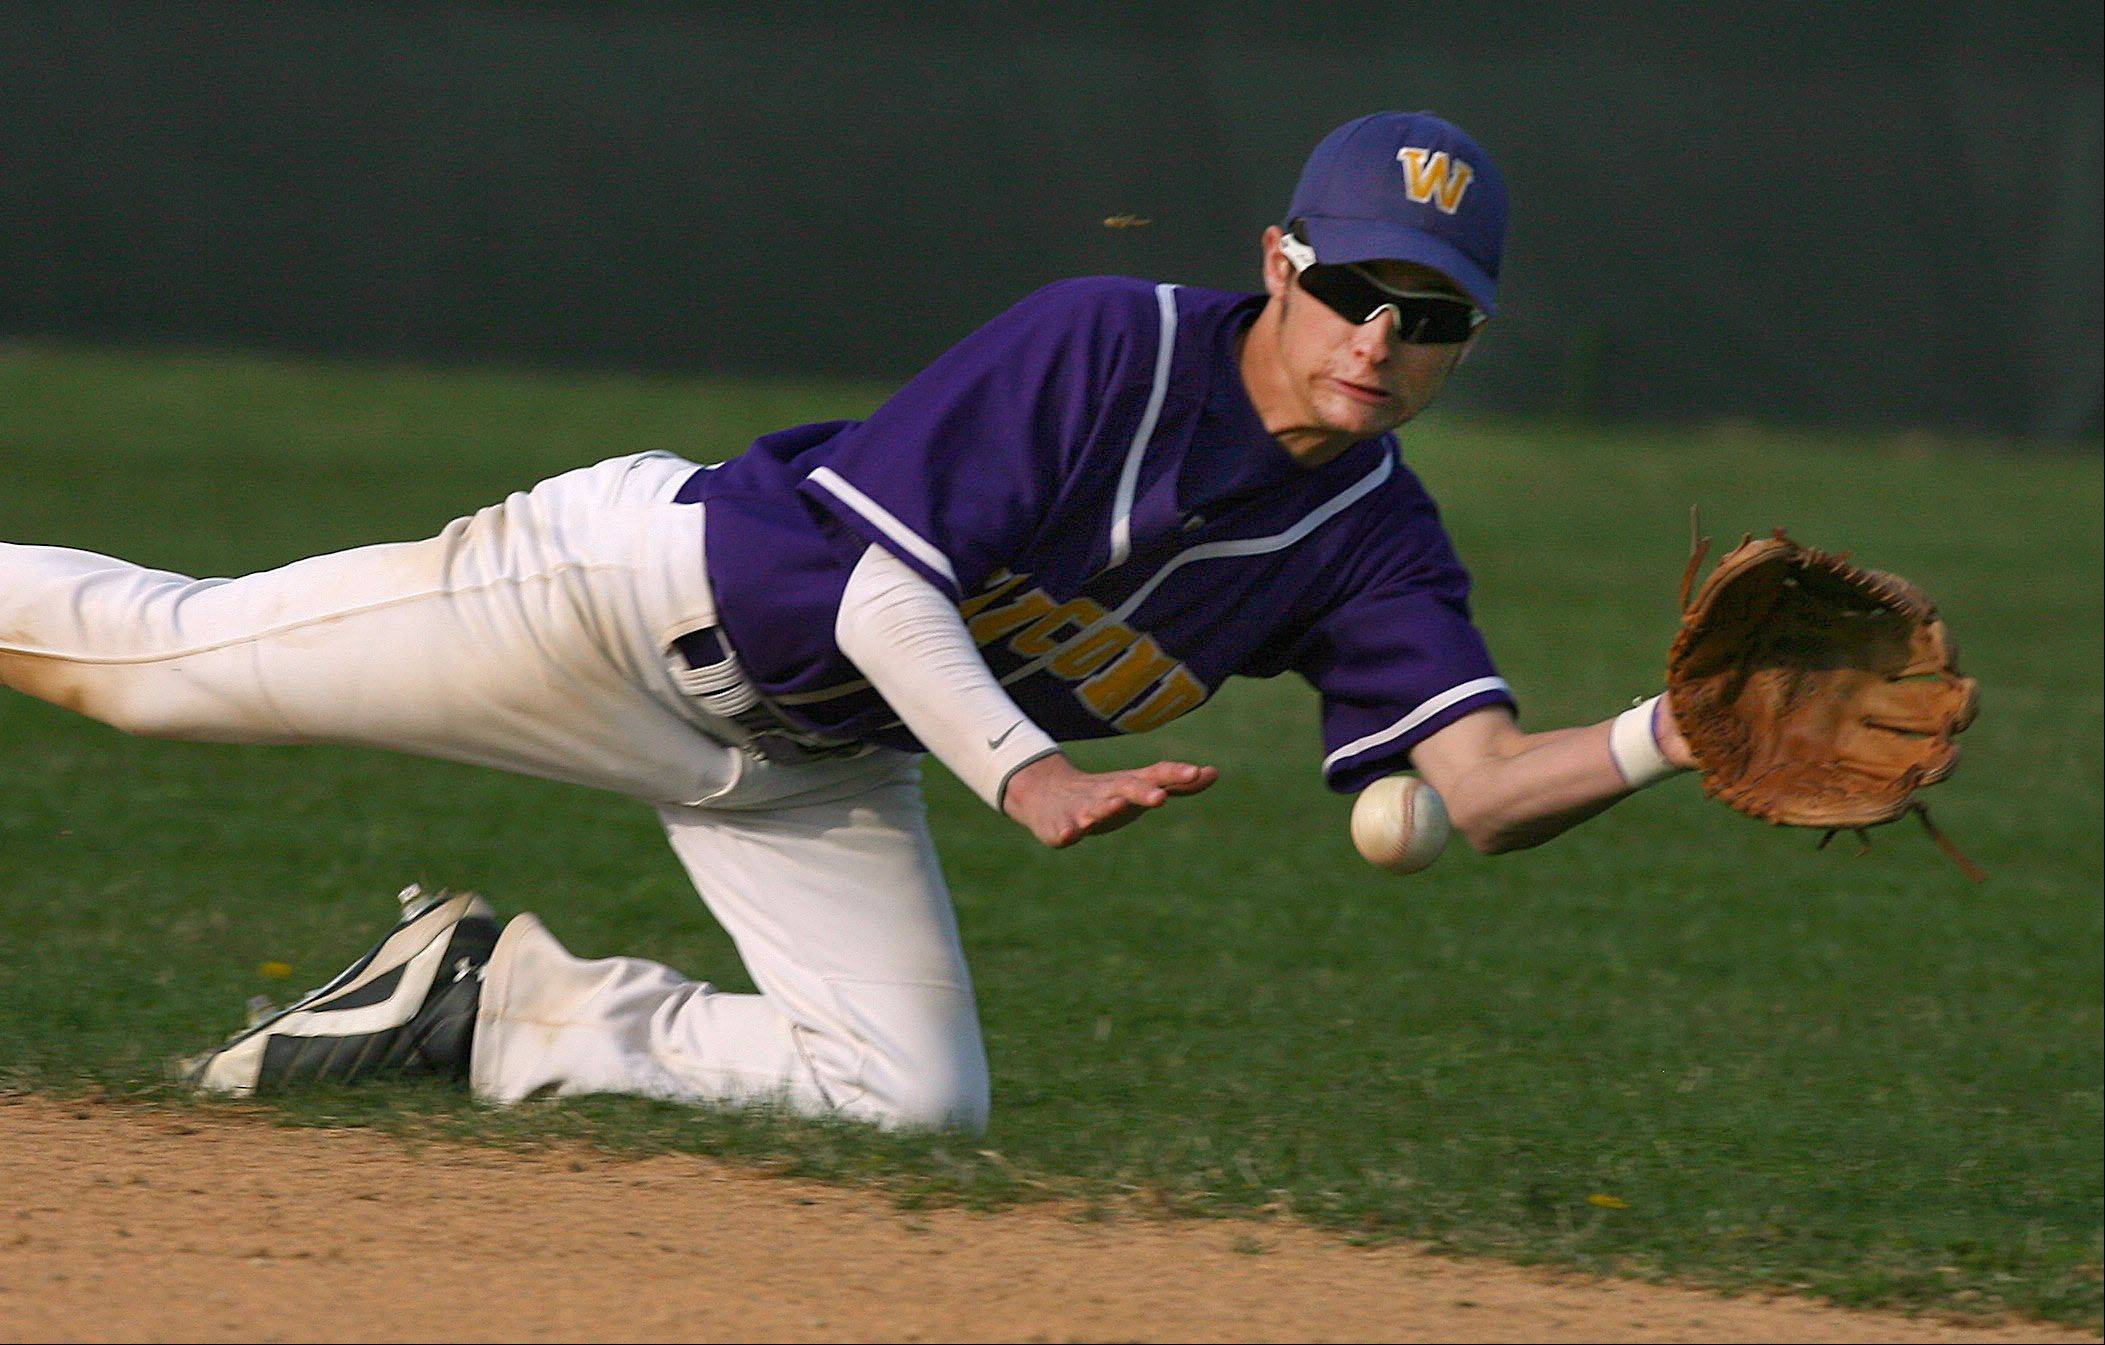 Wauconda's Tony Kaminsky makes a diving catch during Tuesday's baseball game in Wauconda.